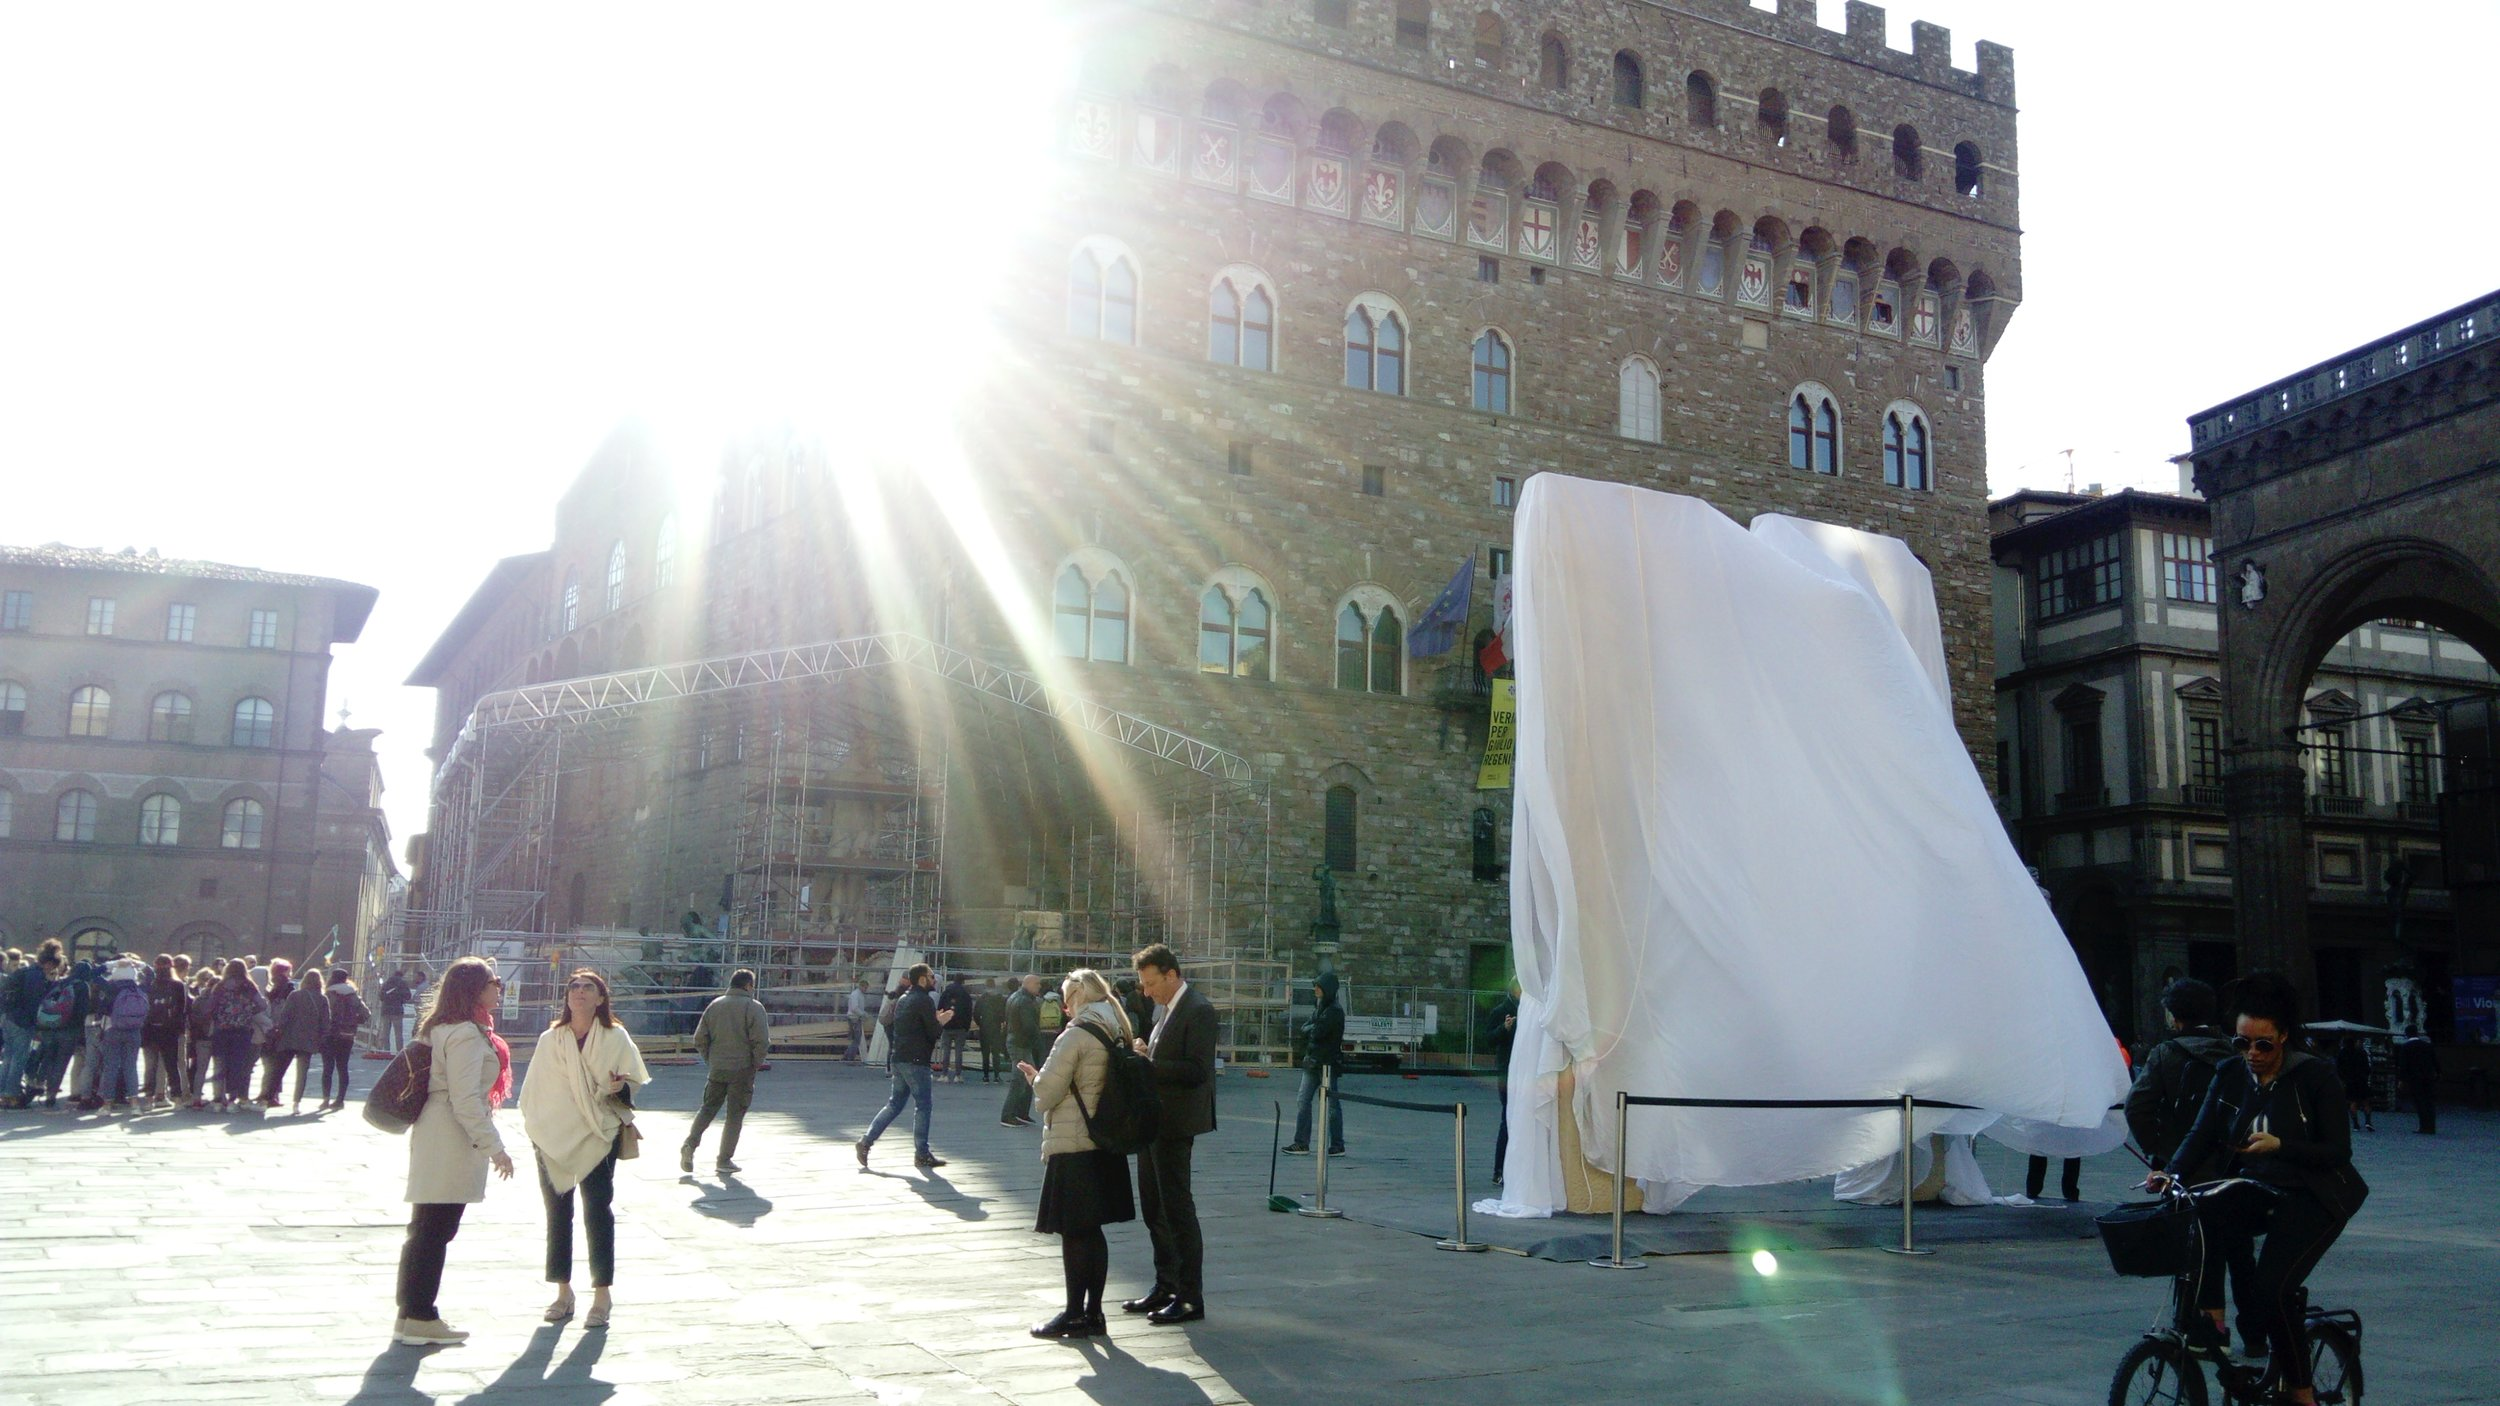 The Arch before its unveiling in Piazza Della signoria, Florence